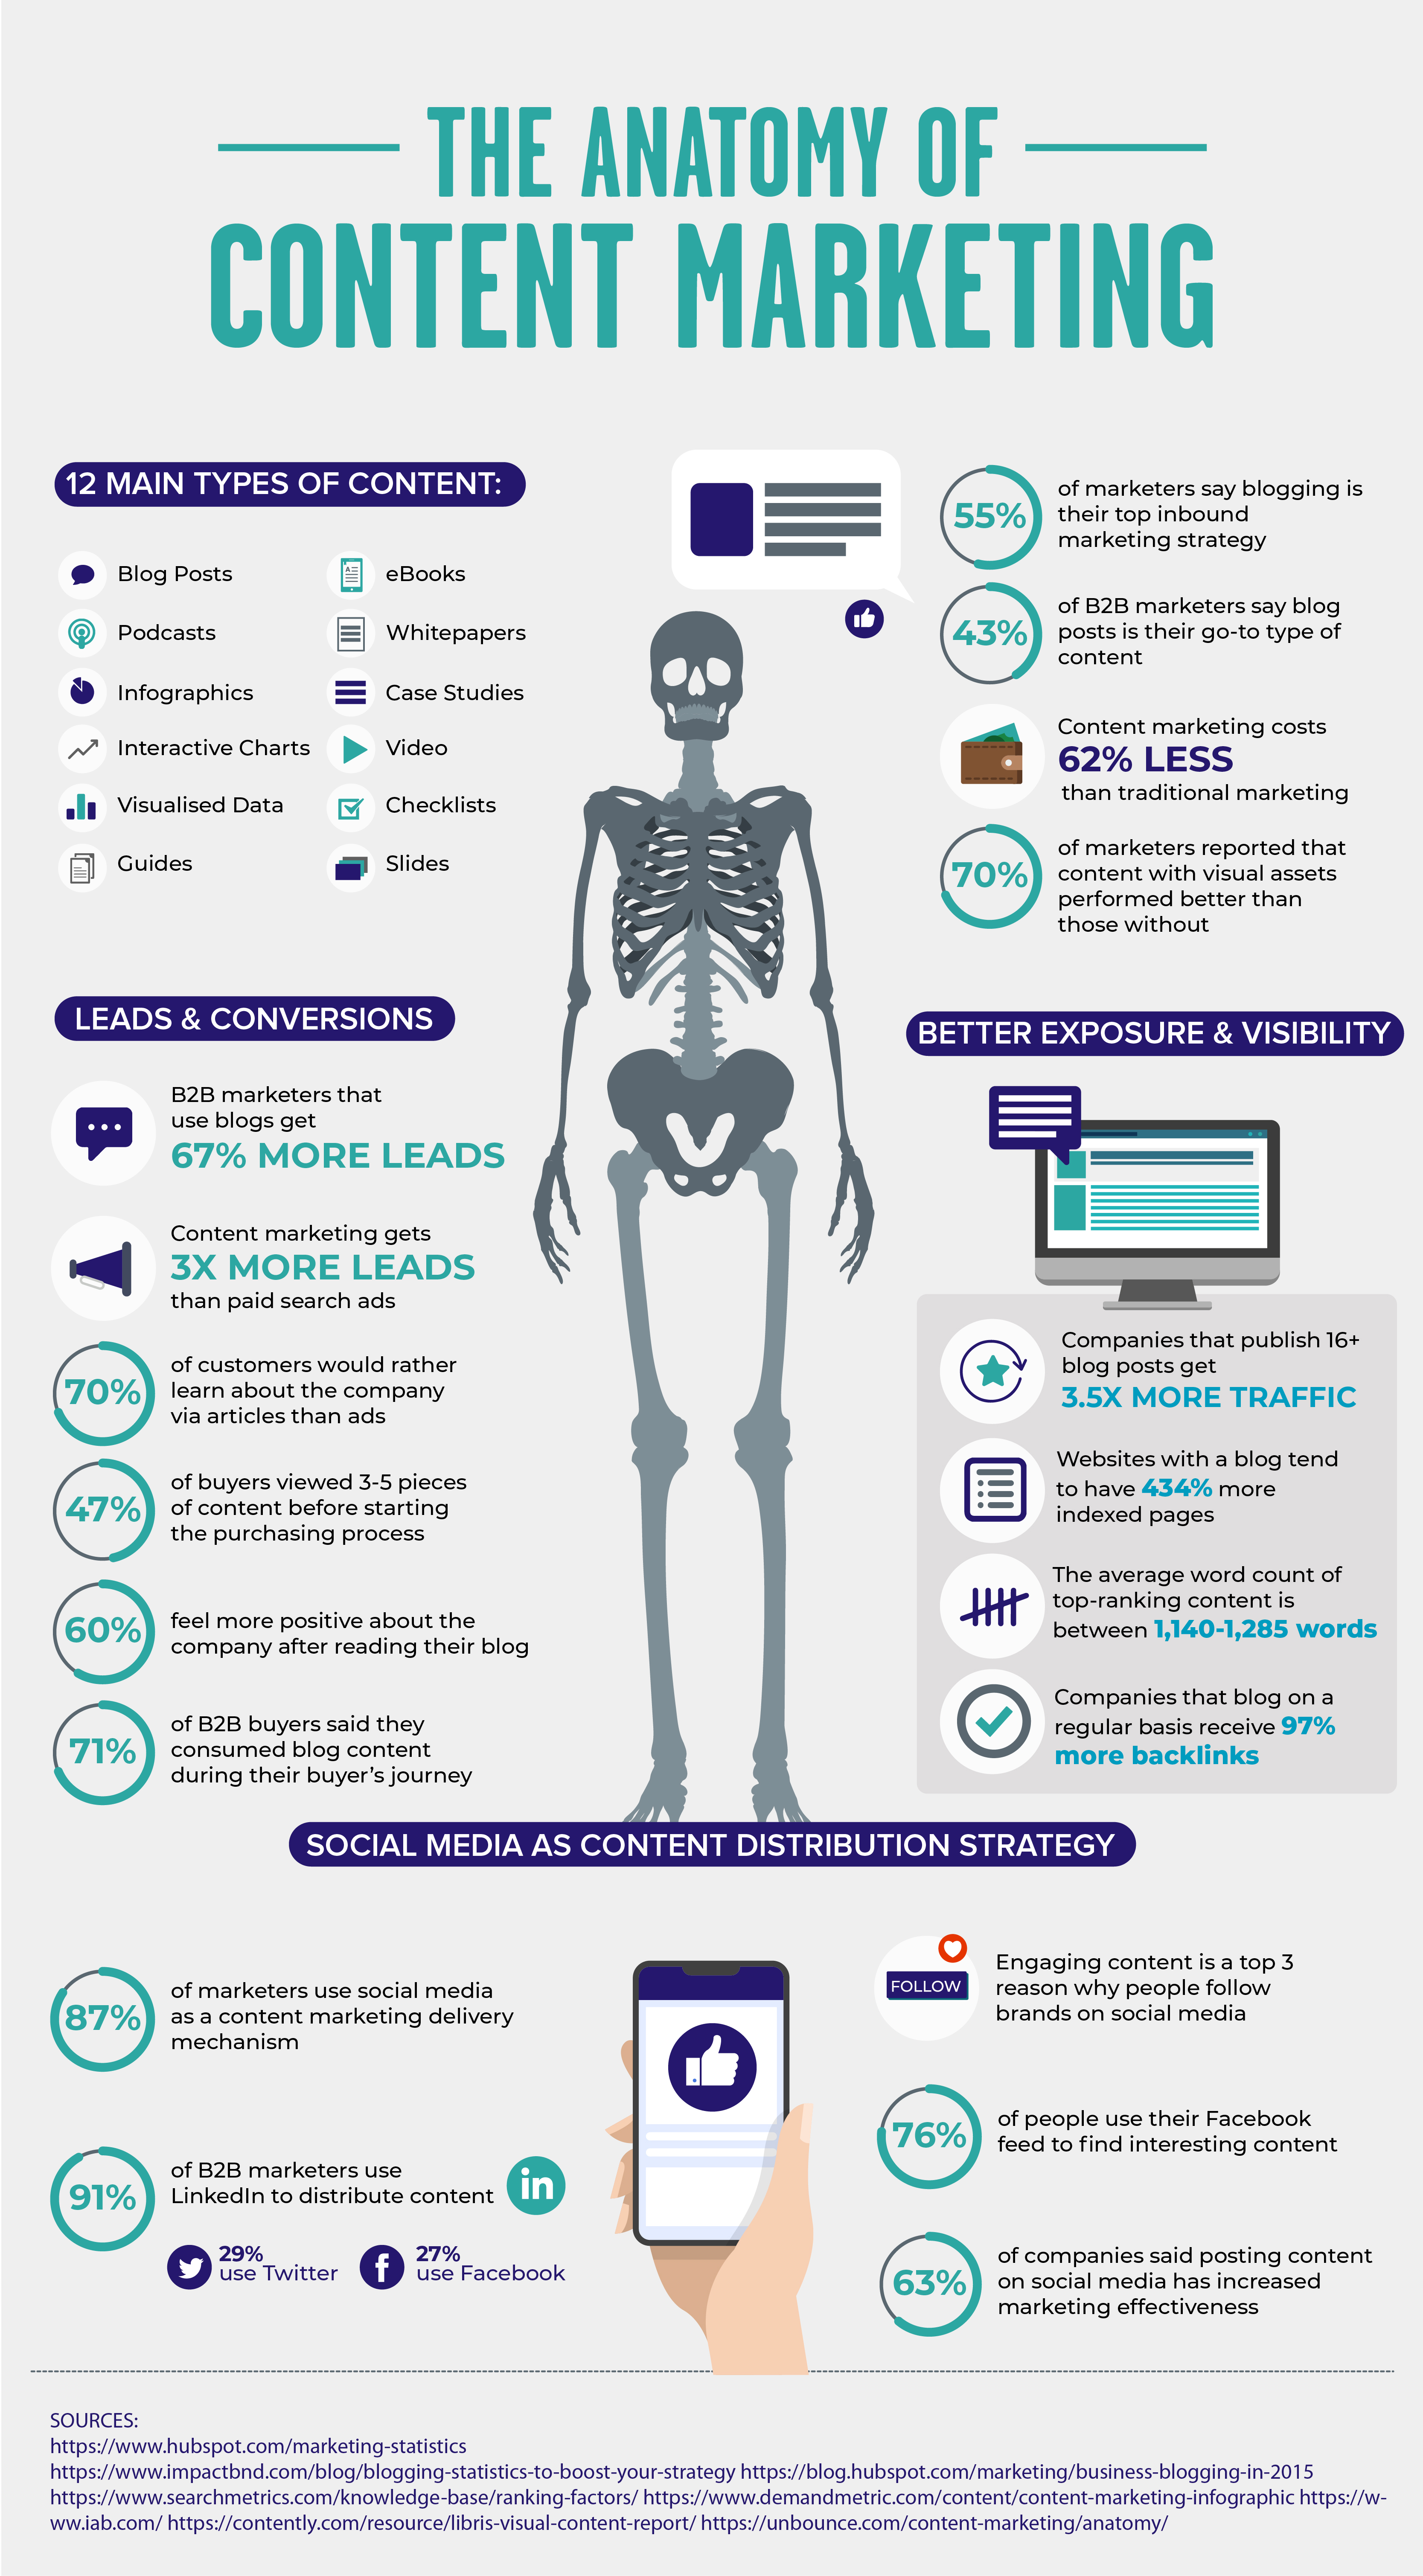 The Anatomy of Content Marketing in 2019!